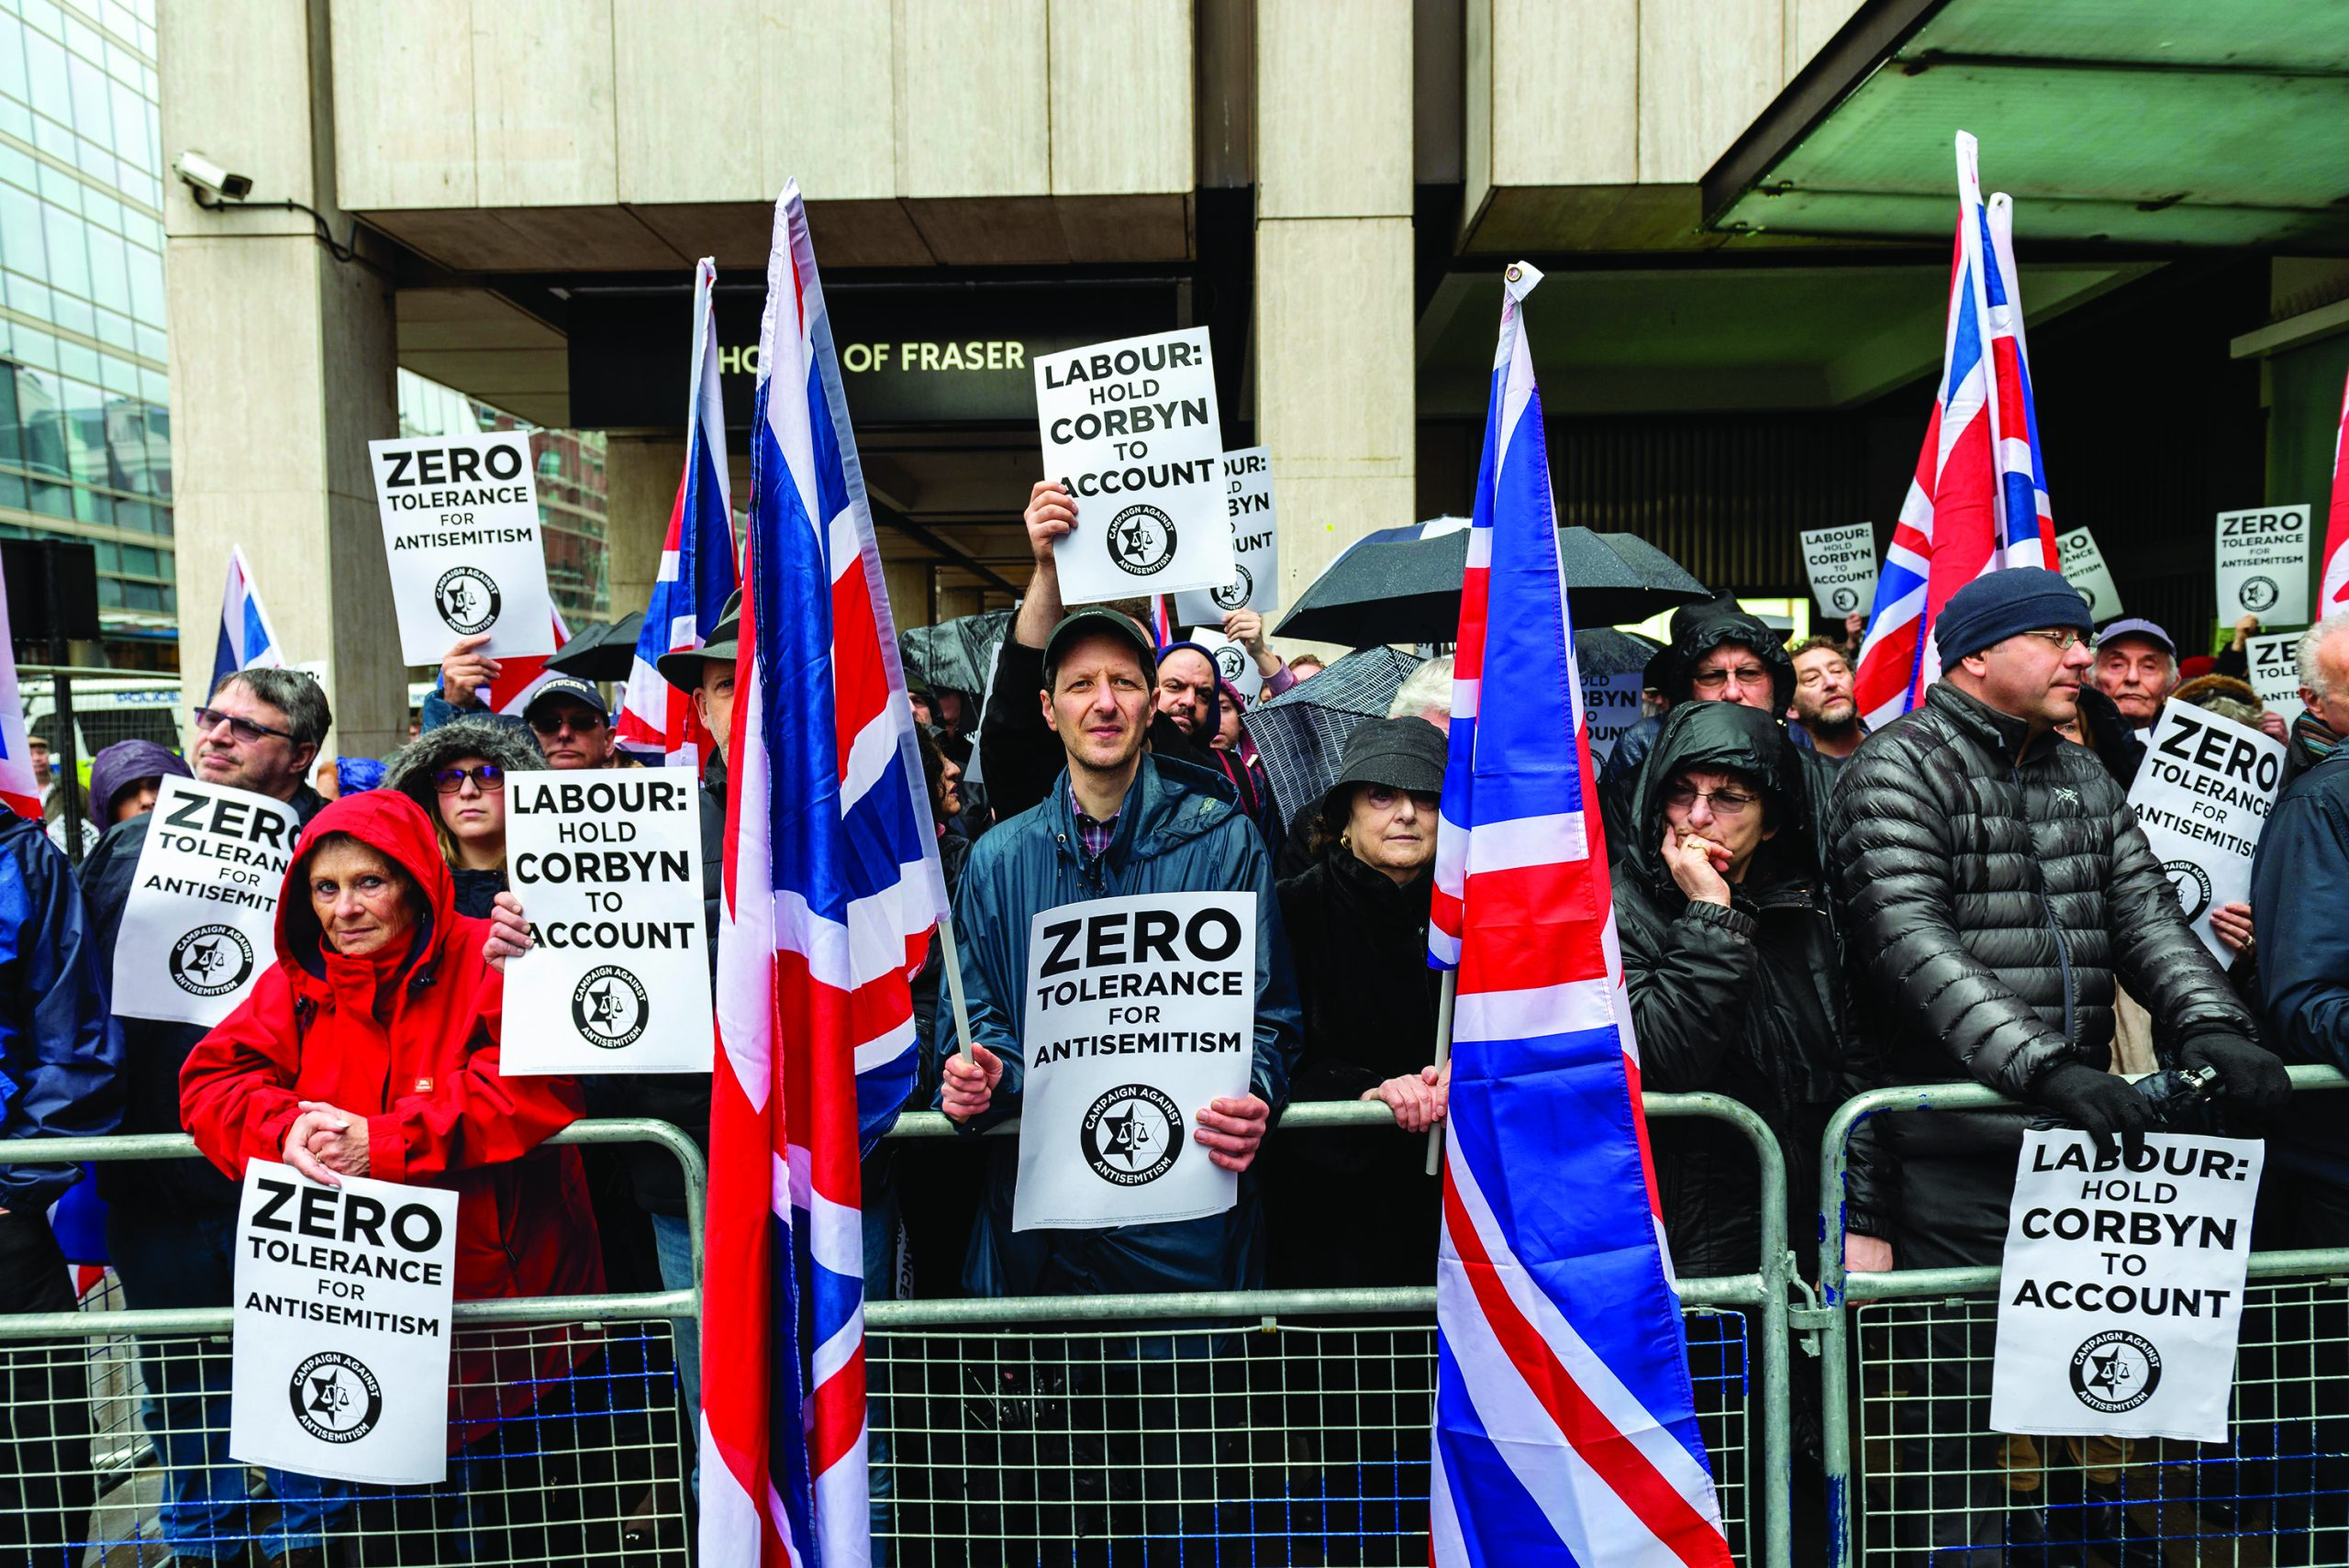 Hundreds of the UK's Jewish community and allies protested outside the Labour Party offices